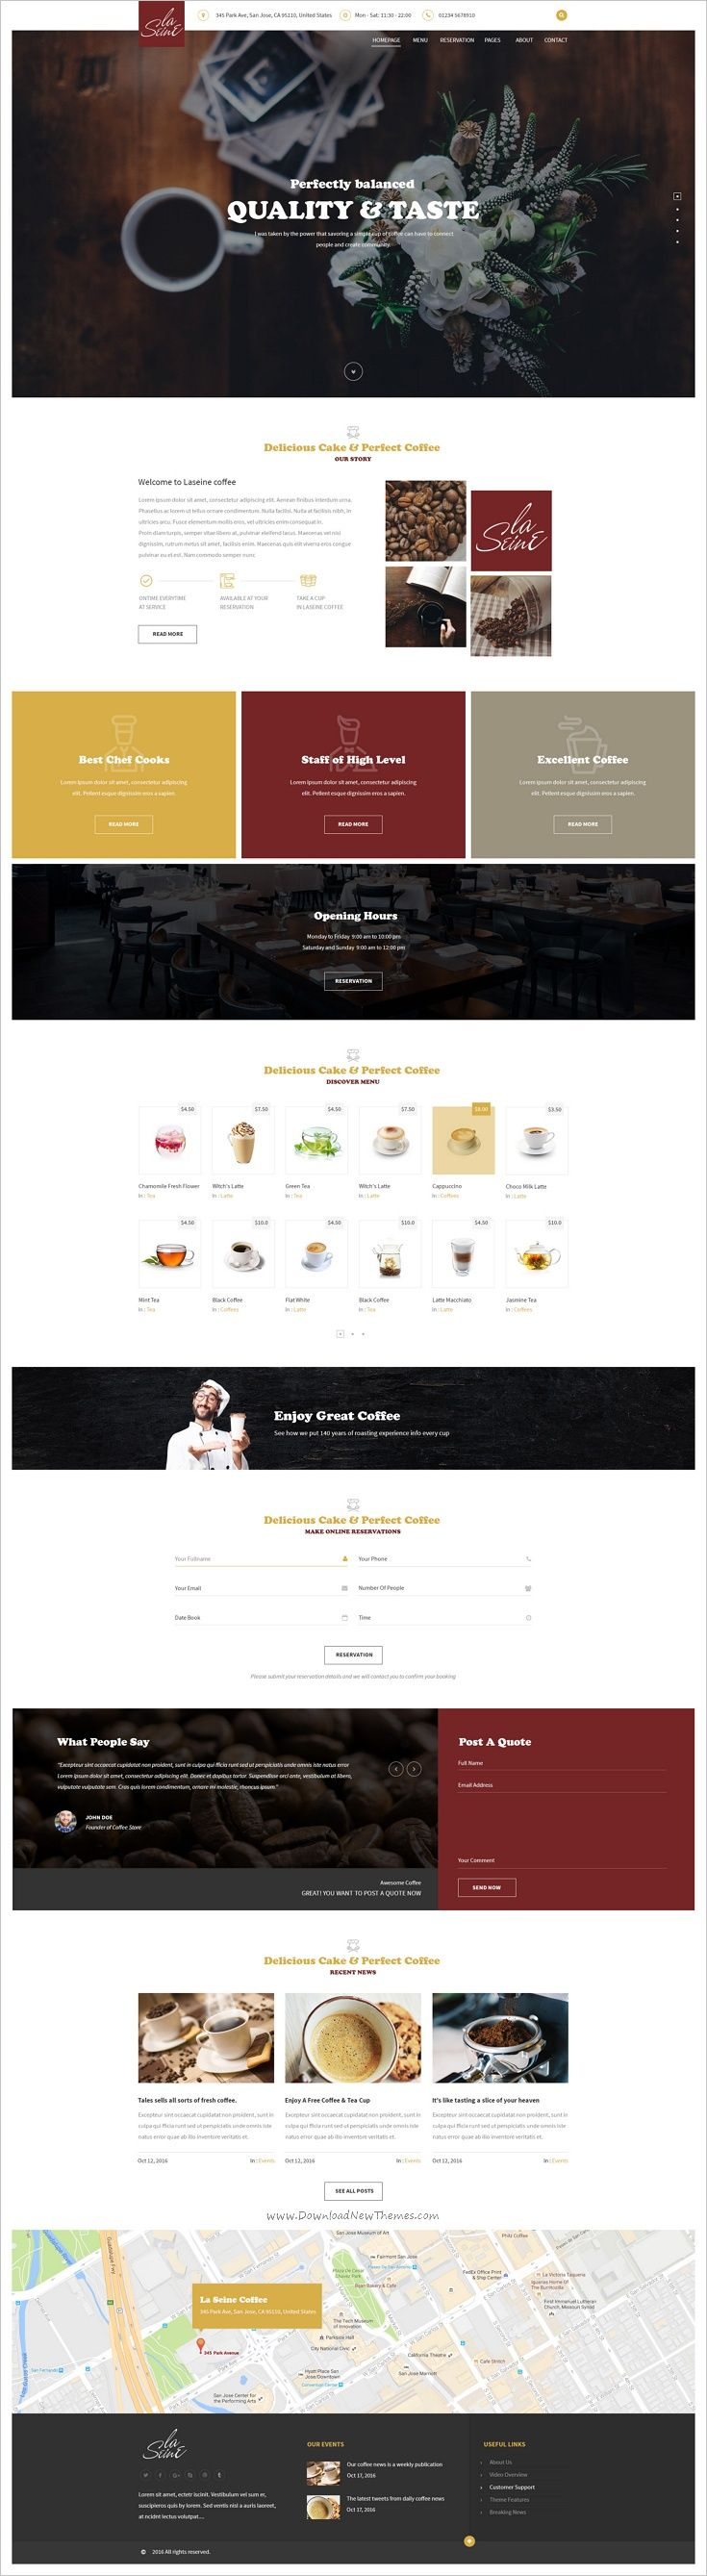 LaSeine is beautifully design premium #PSD template for #webdesign #coffee shop and #cafes website download now➩ https://themeforest.net/item/laseine-coffee-psd-template/18737846?ref=Datasata